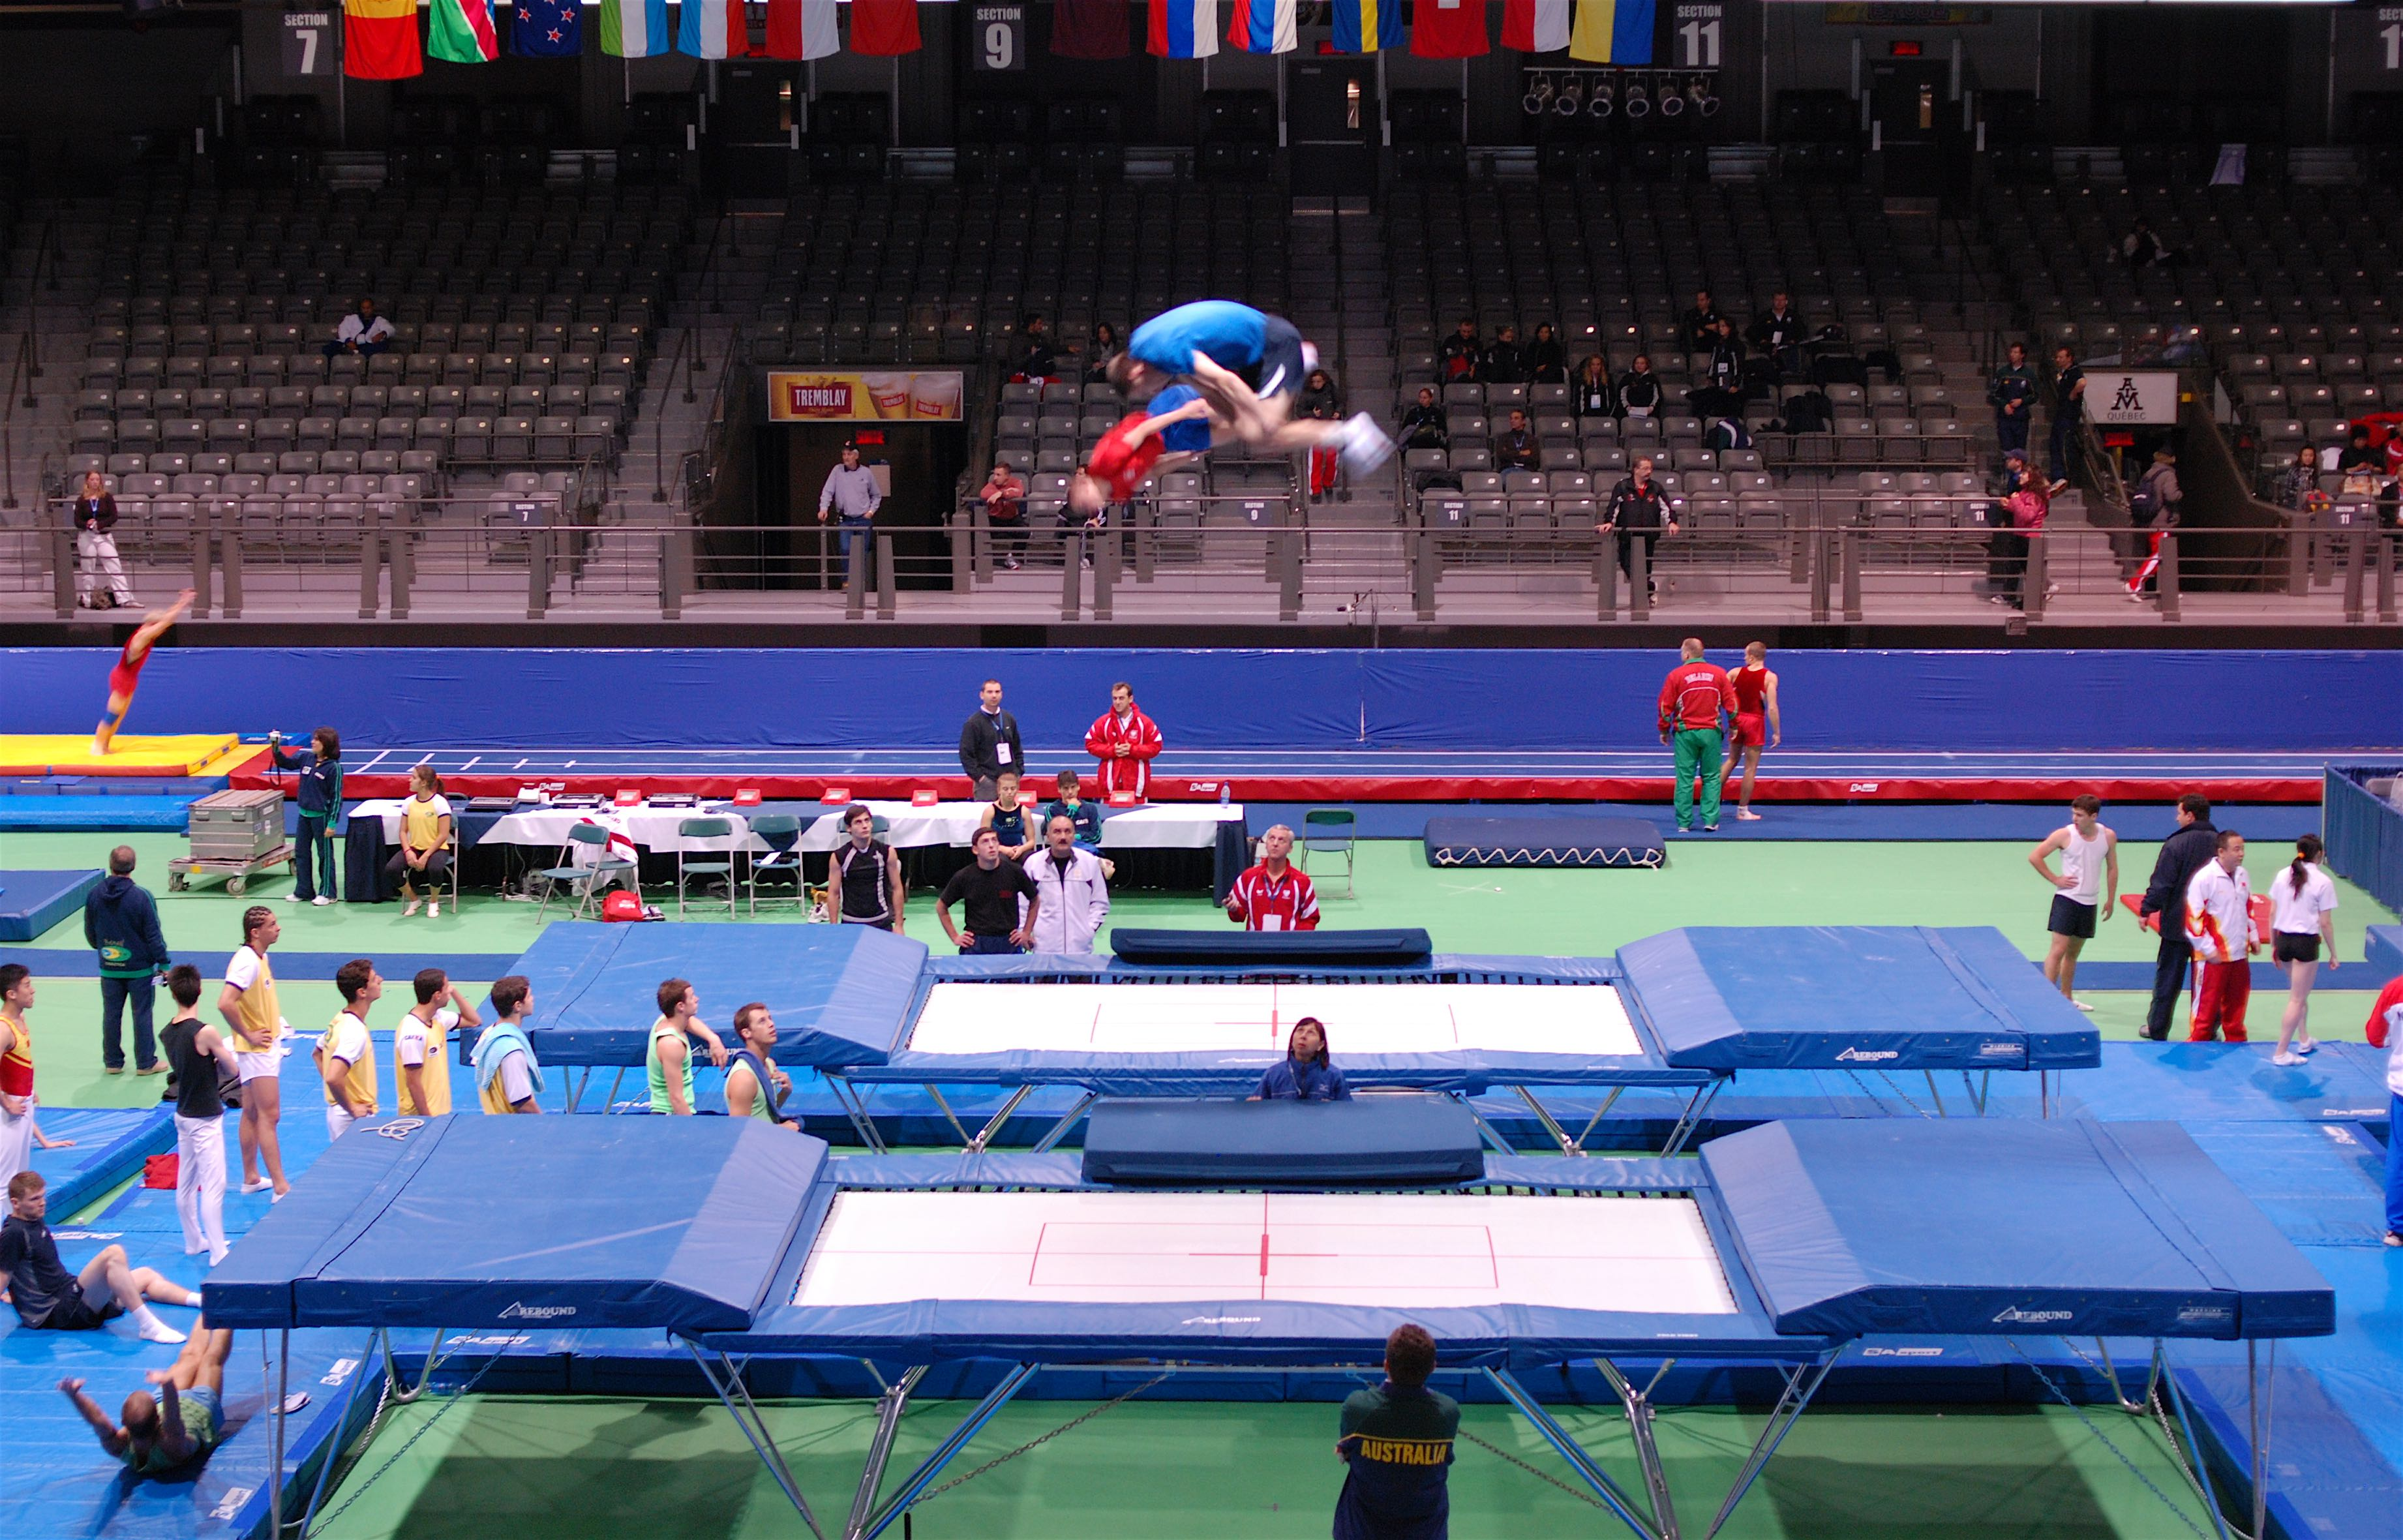 Beds 7x14 - at Worlds 2007 training day